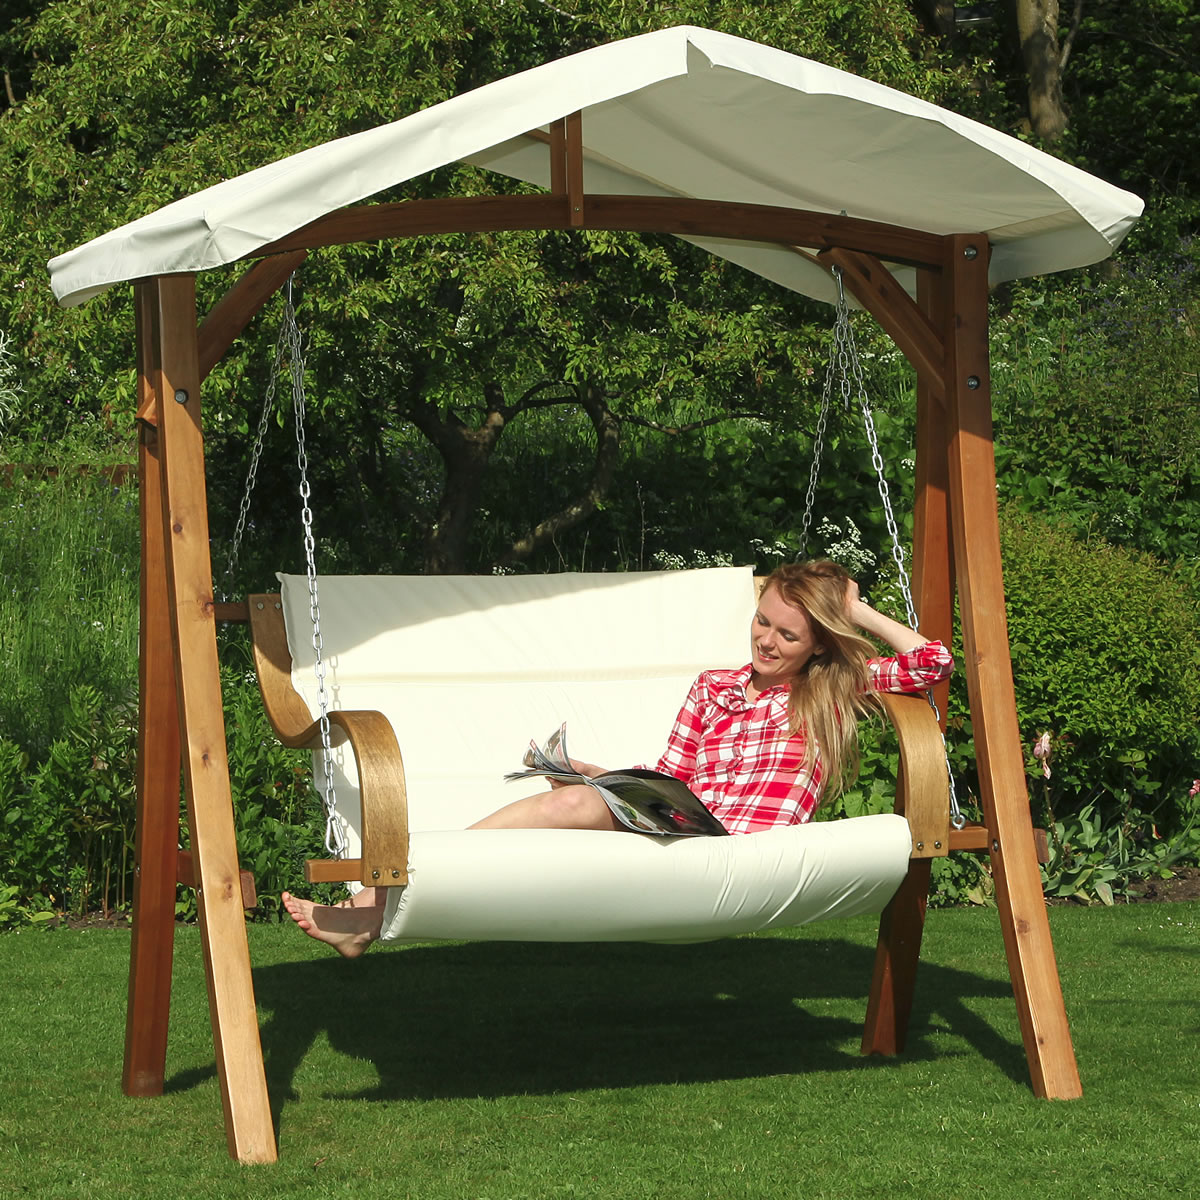 garden swing chair 2 seater garden swing chairs modern patio outdoor garden swing chair   28 images   25 best ideas about garden swing      rh   screensinthewild org